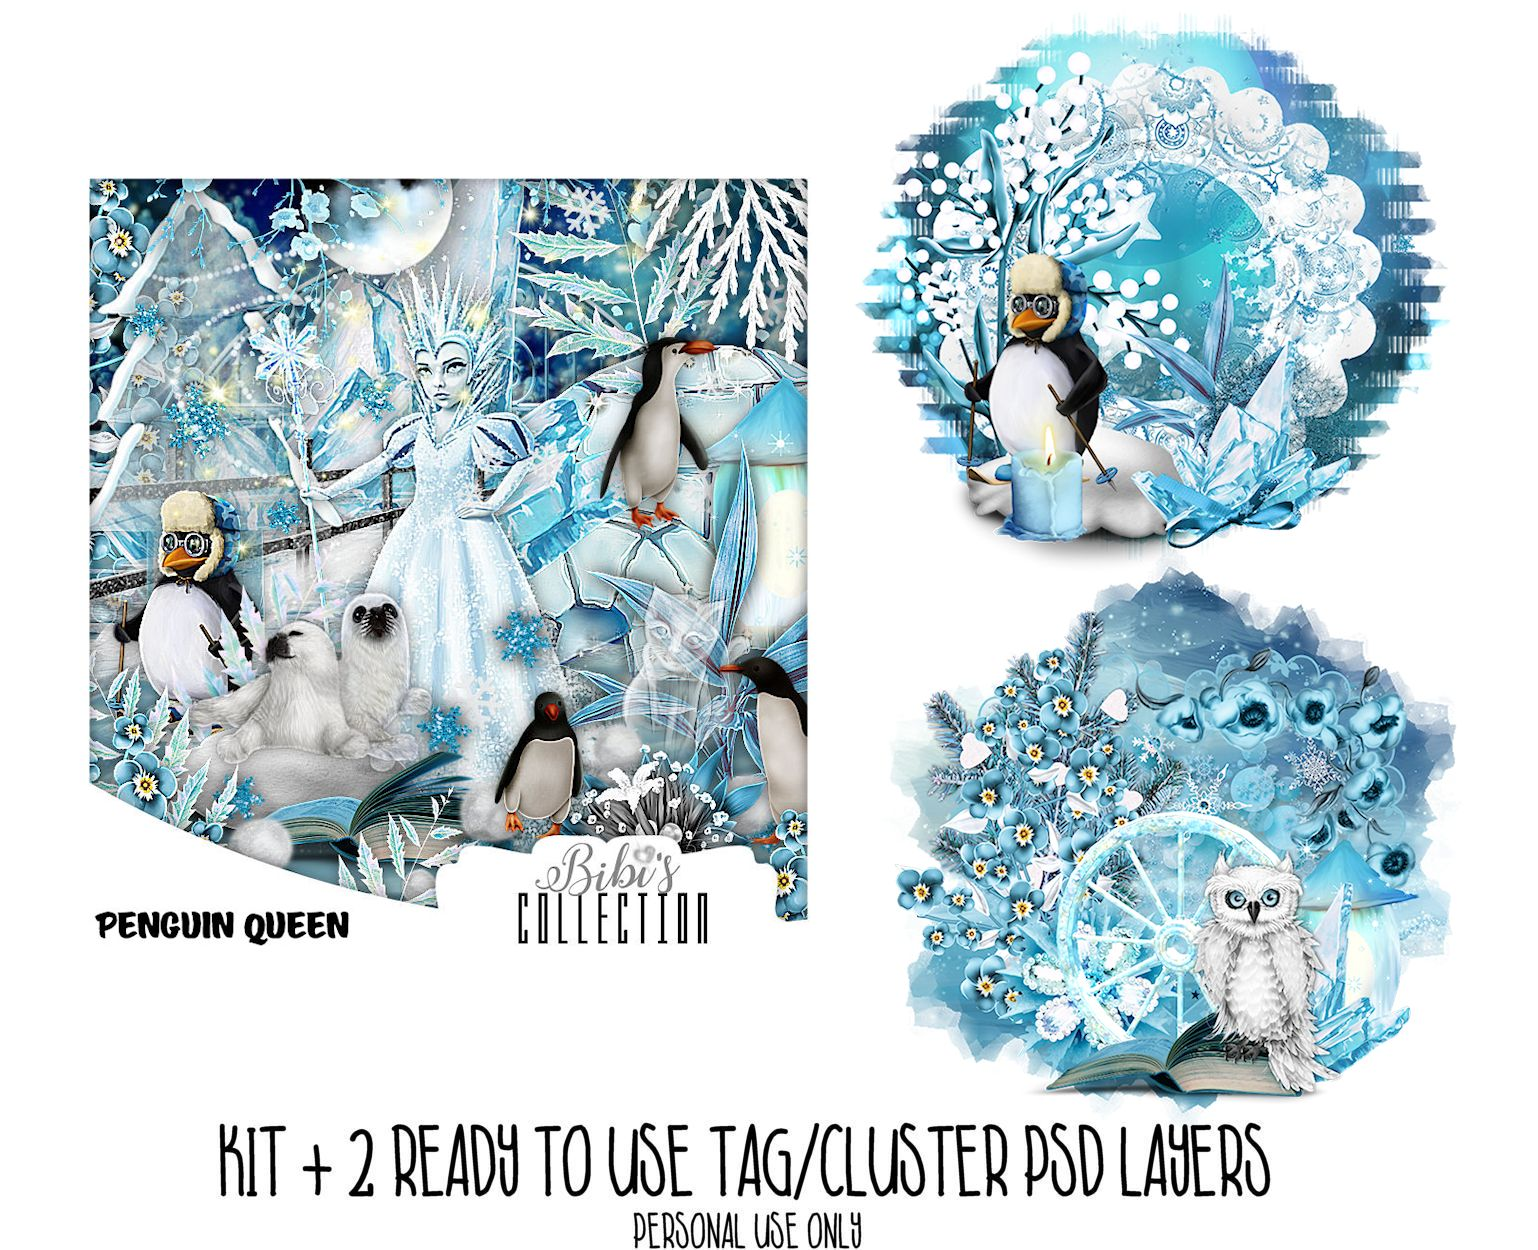 PENGUIN QUEEN +READY CLUSTER TAGS PSD